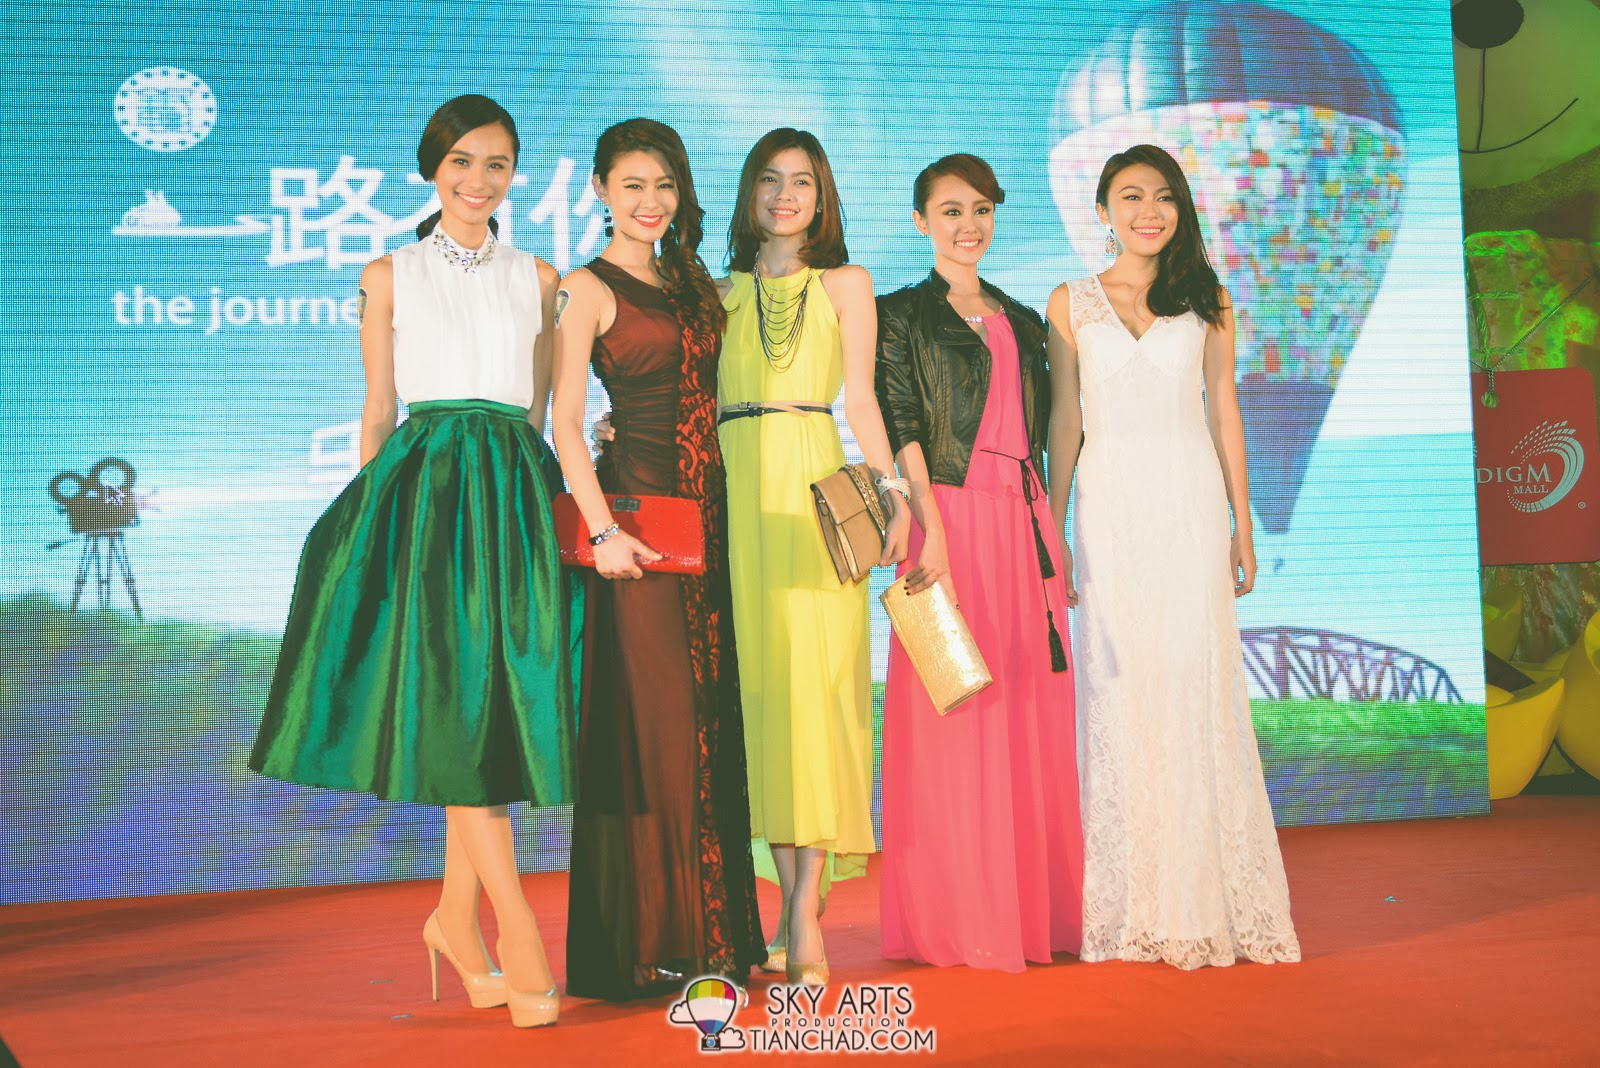 一路有你 The Journey Gala Premiere RedCarpet @ Paradigm Mall